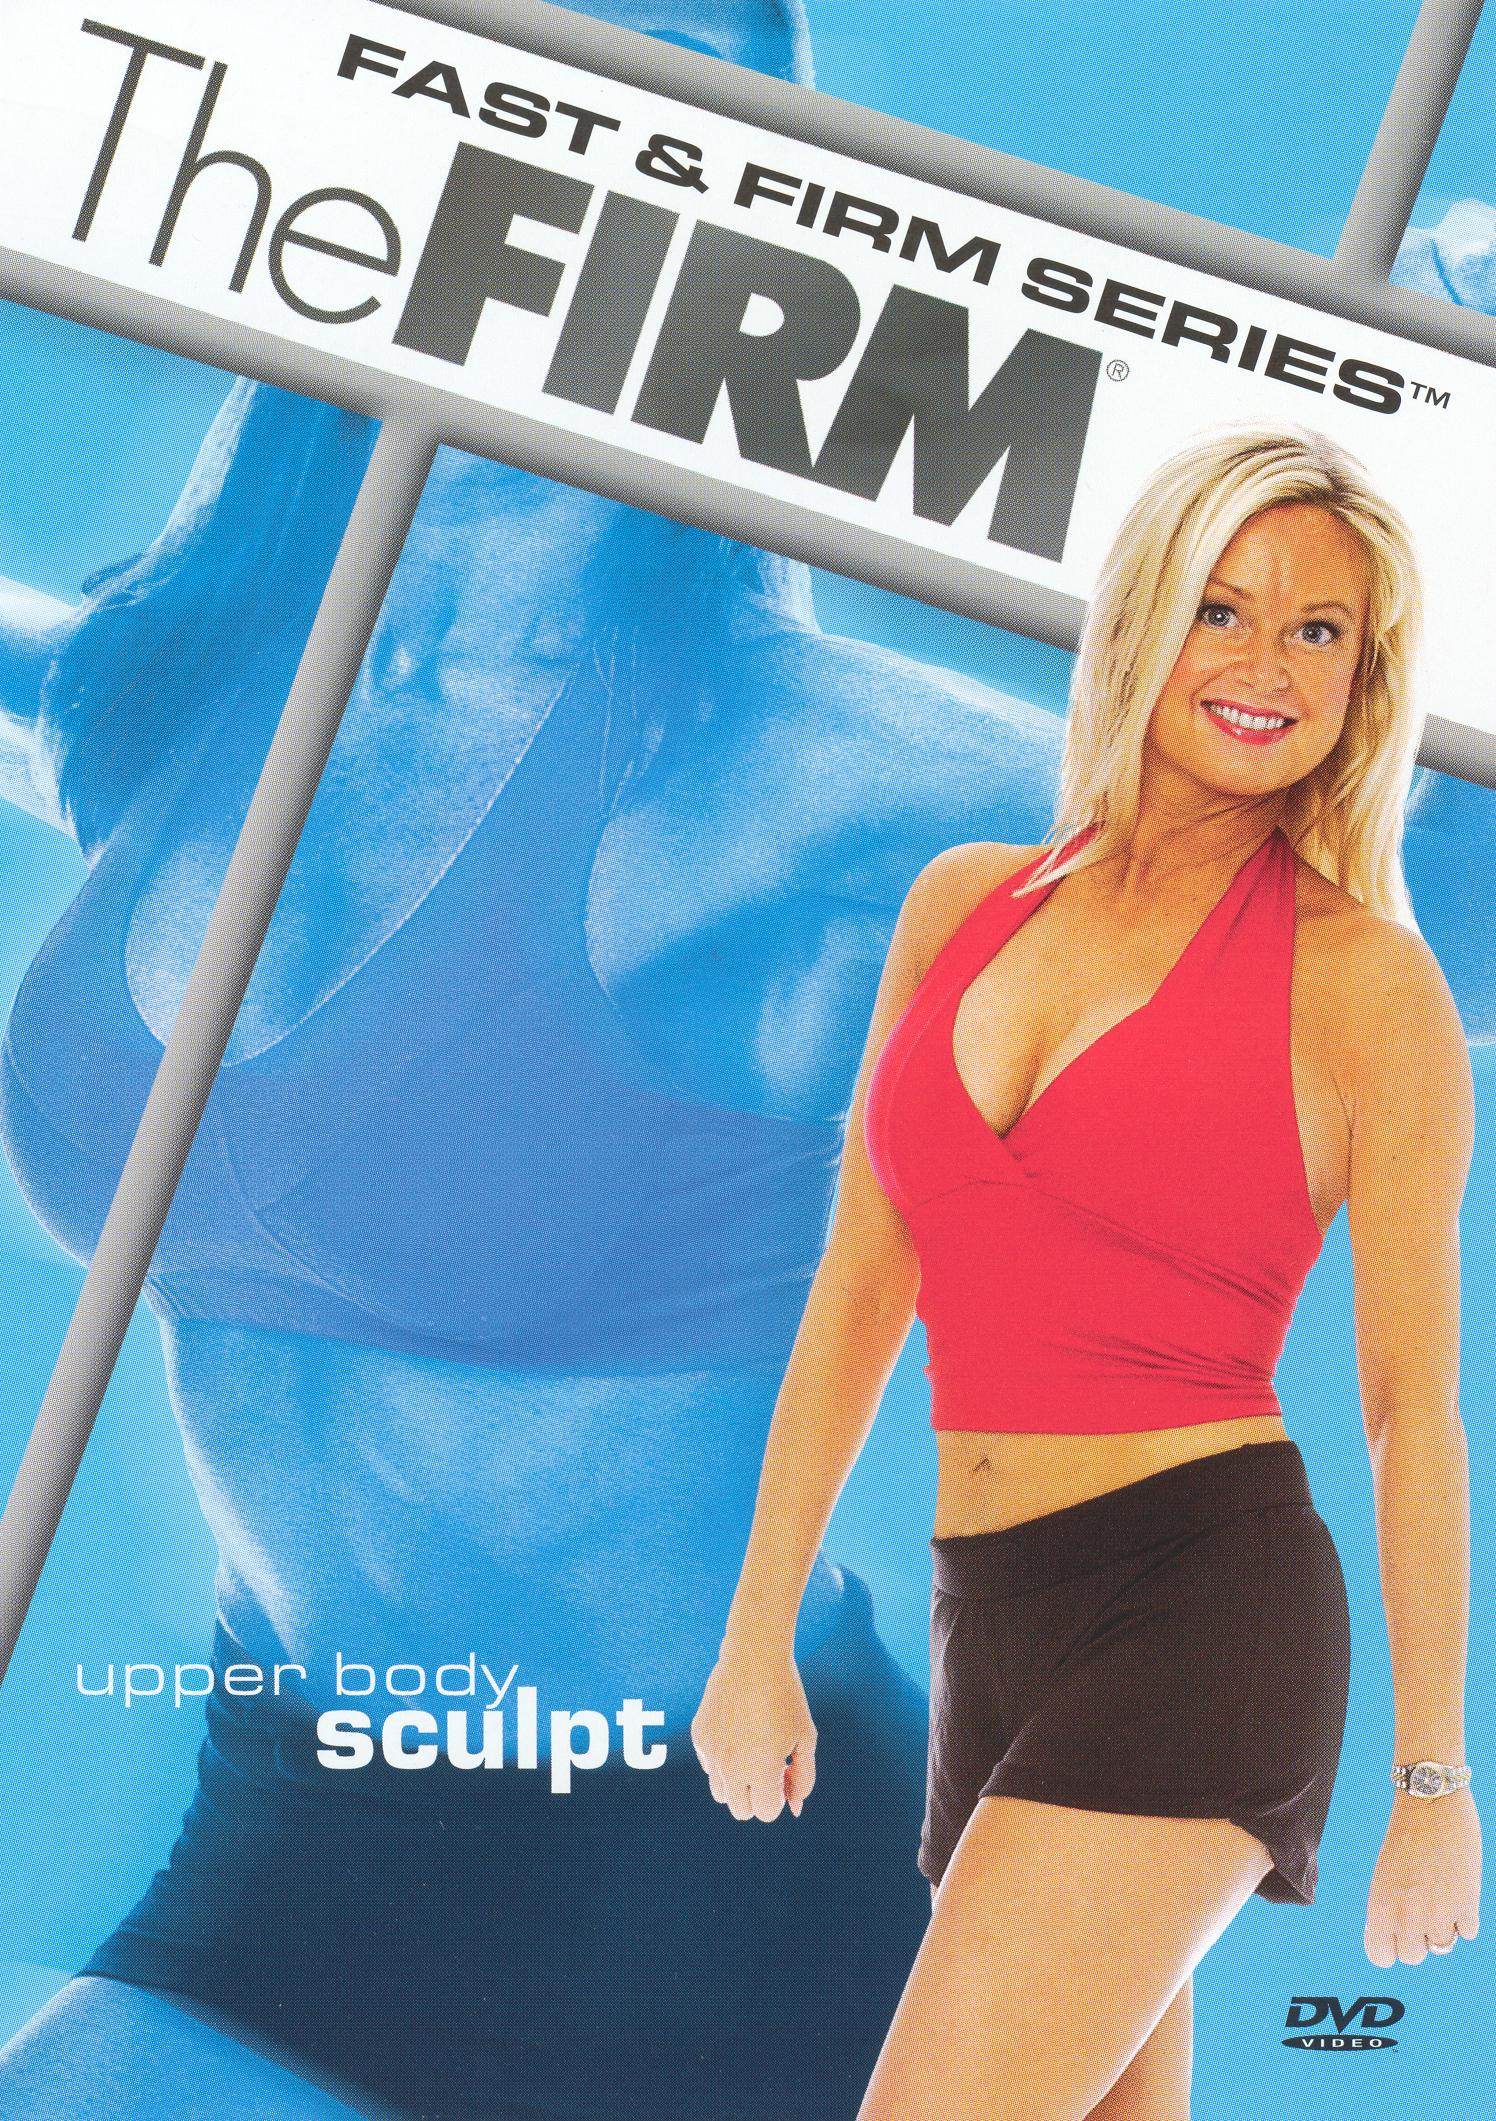 The Firm: Body Sculpting System 2 - Upper Body Sculpt